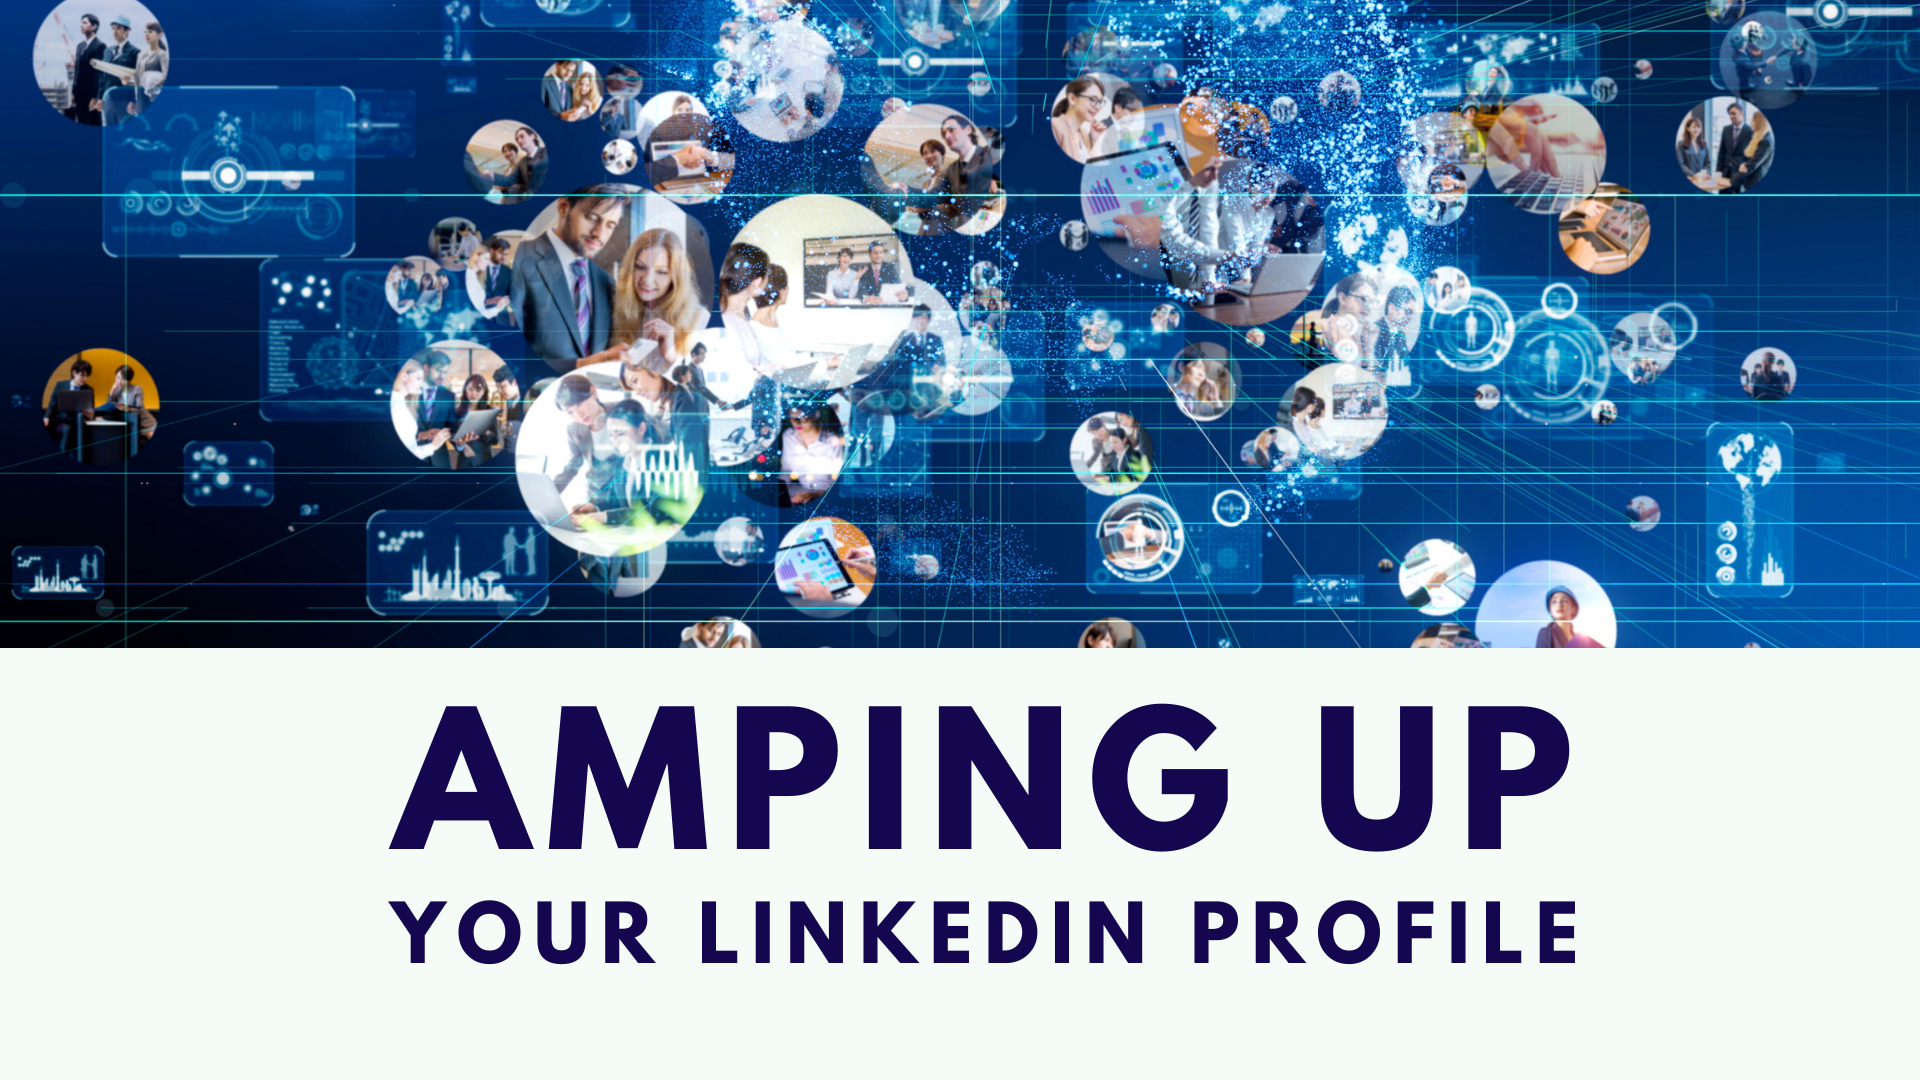 Amping Up Your LInkedIn Profile